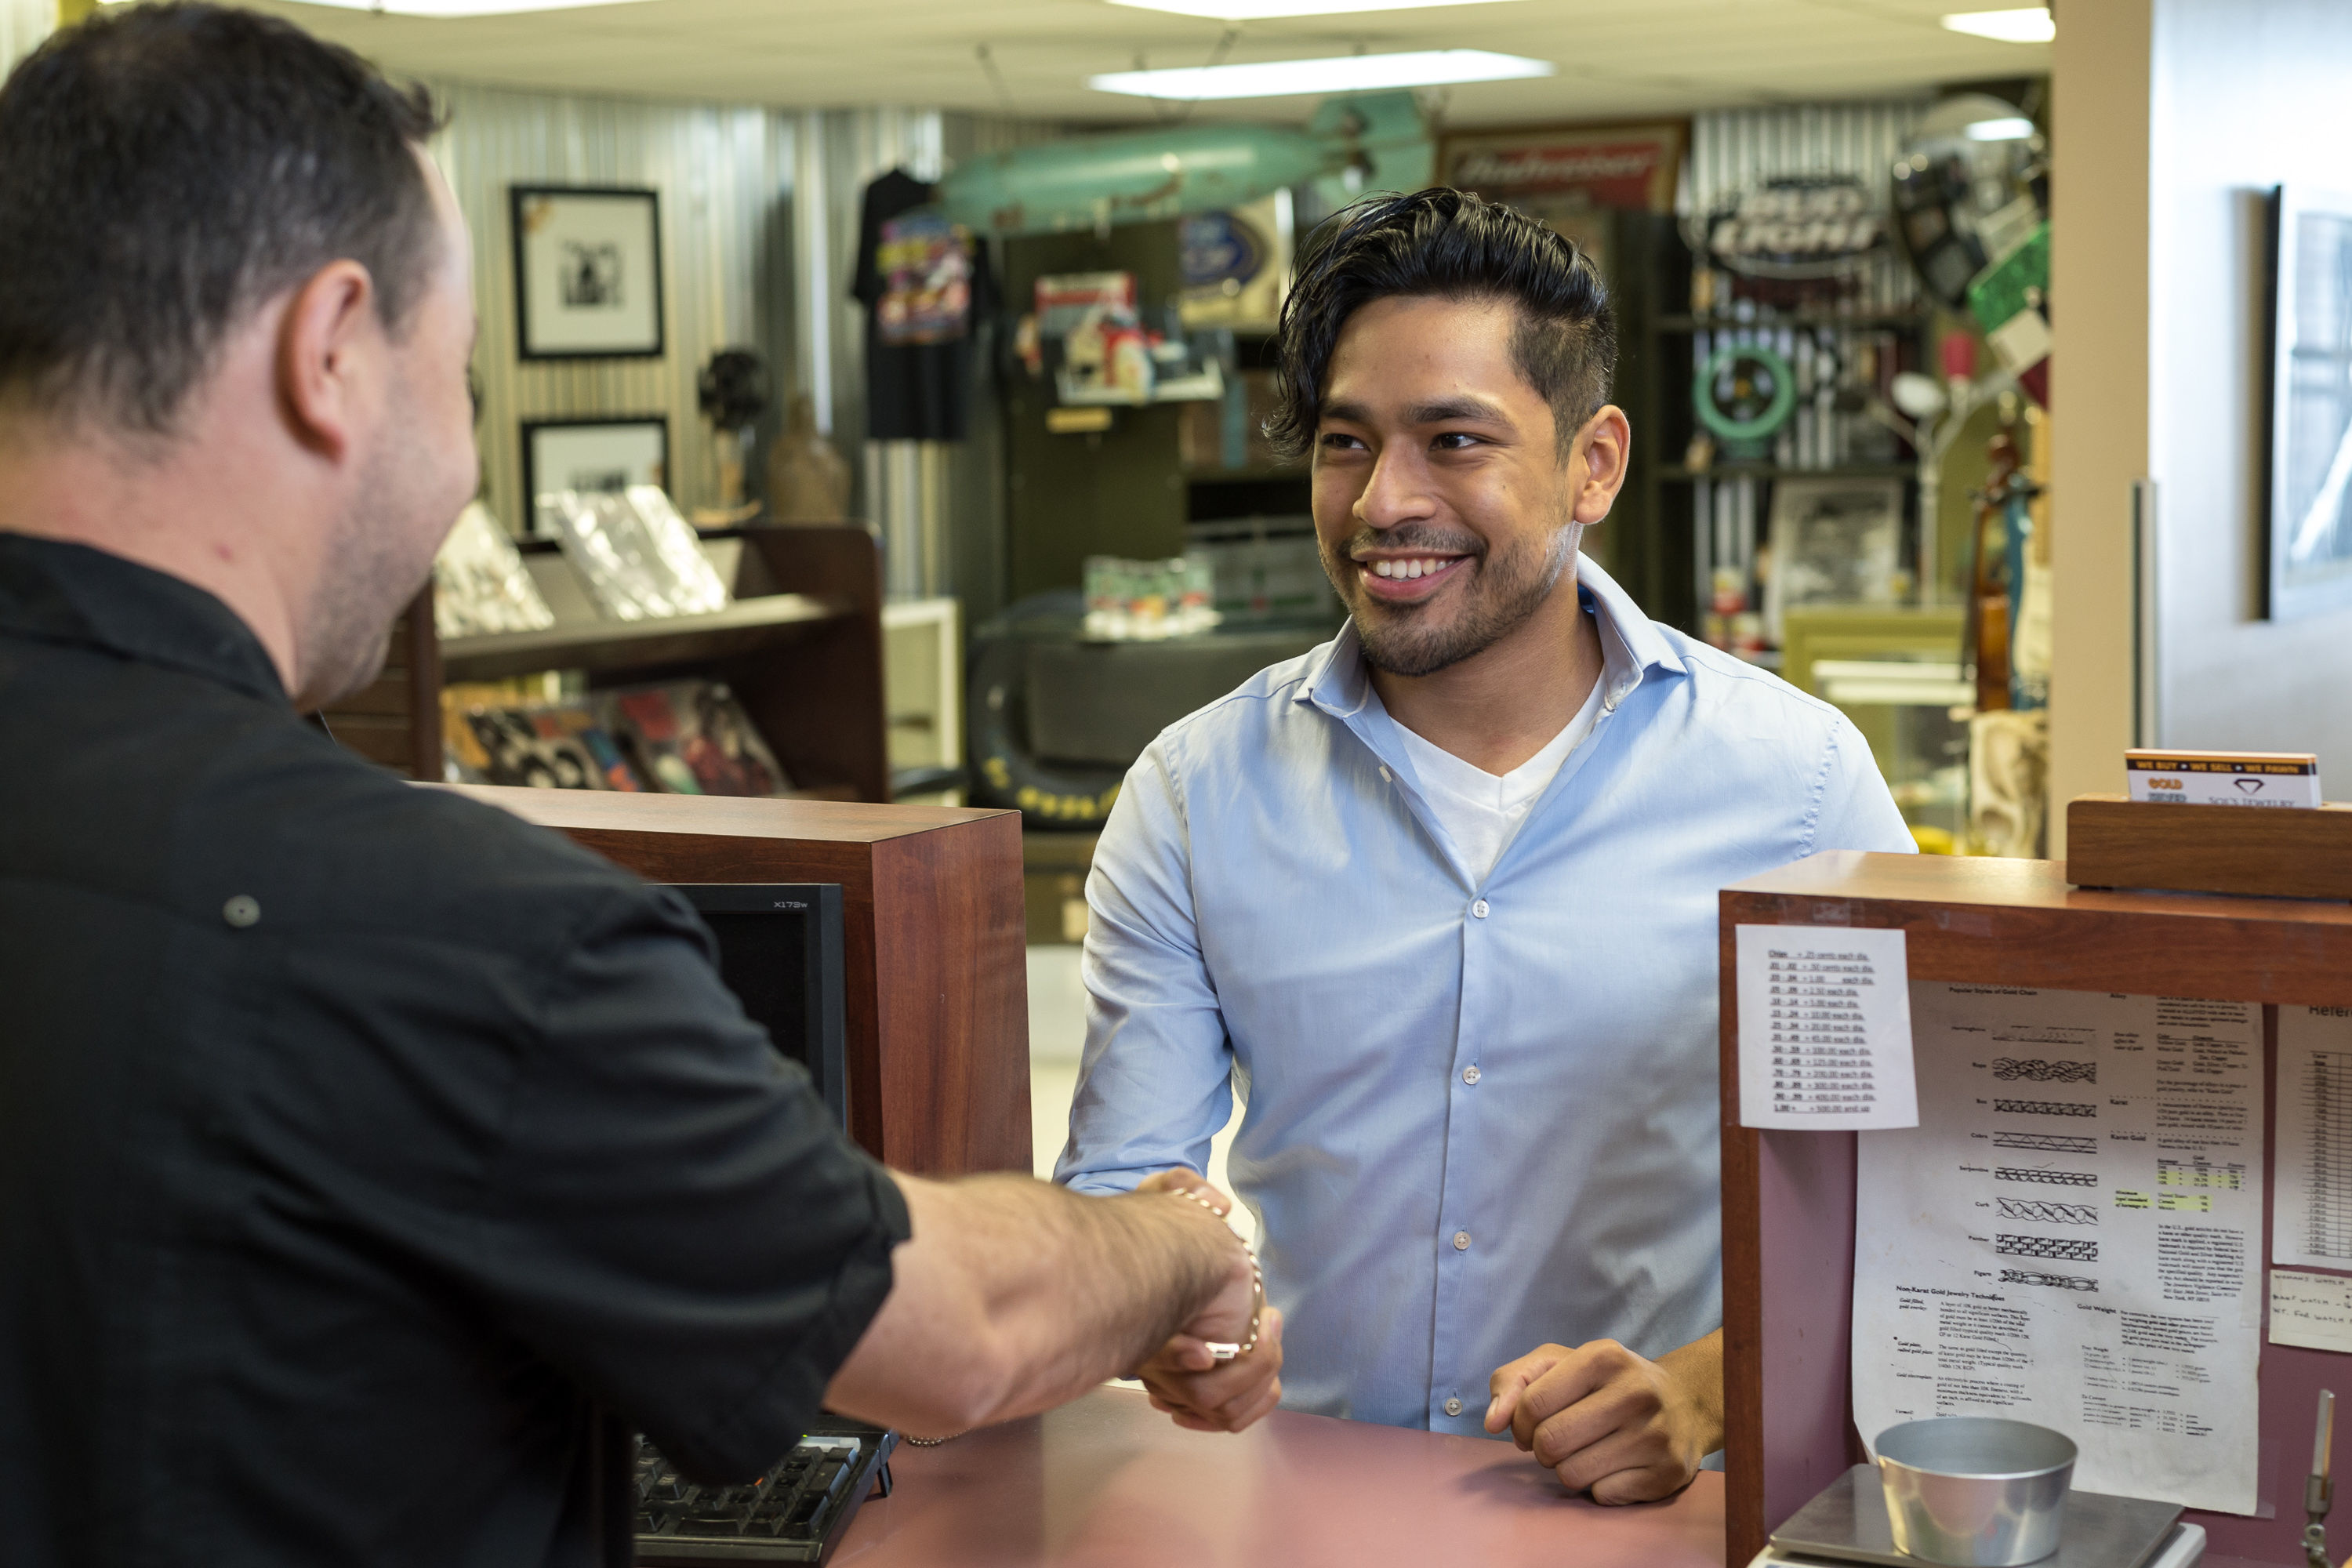 Pawn shop employee shaking hands with a customer